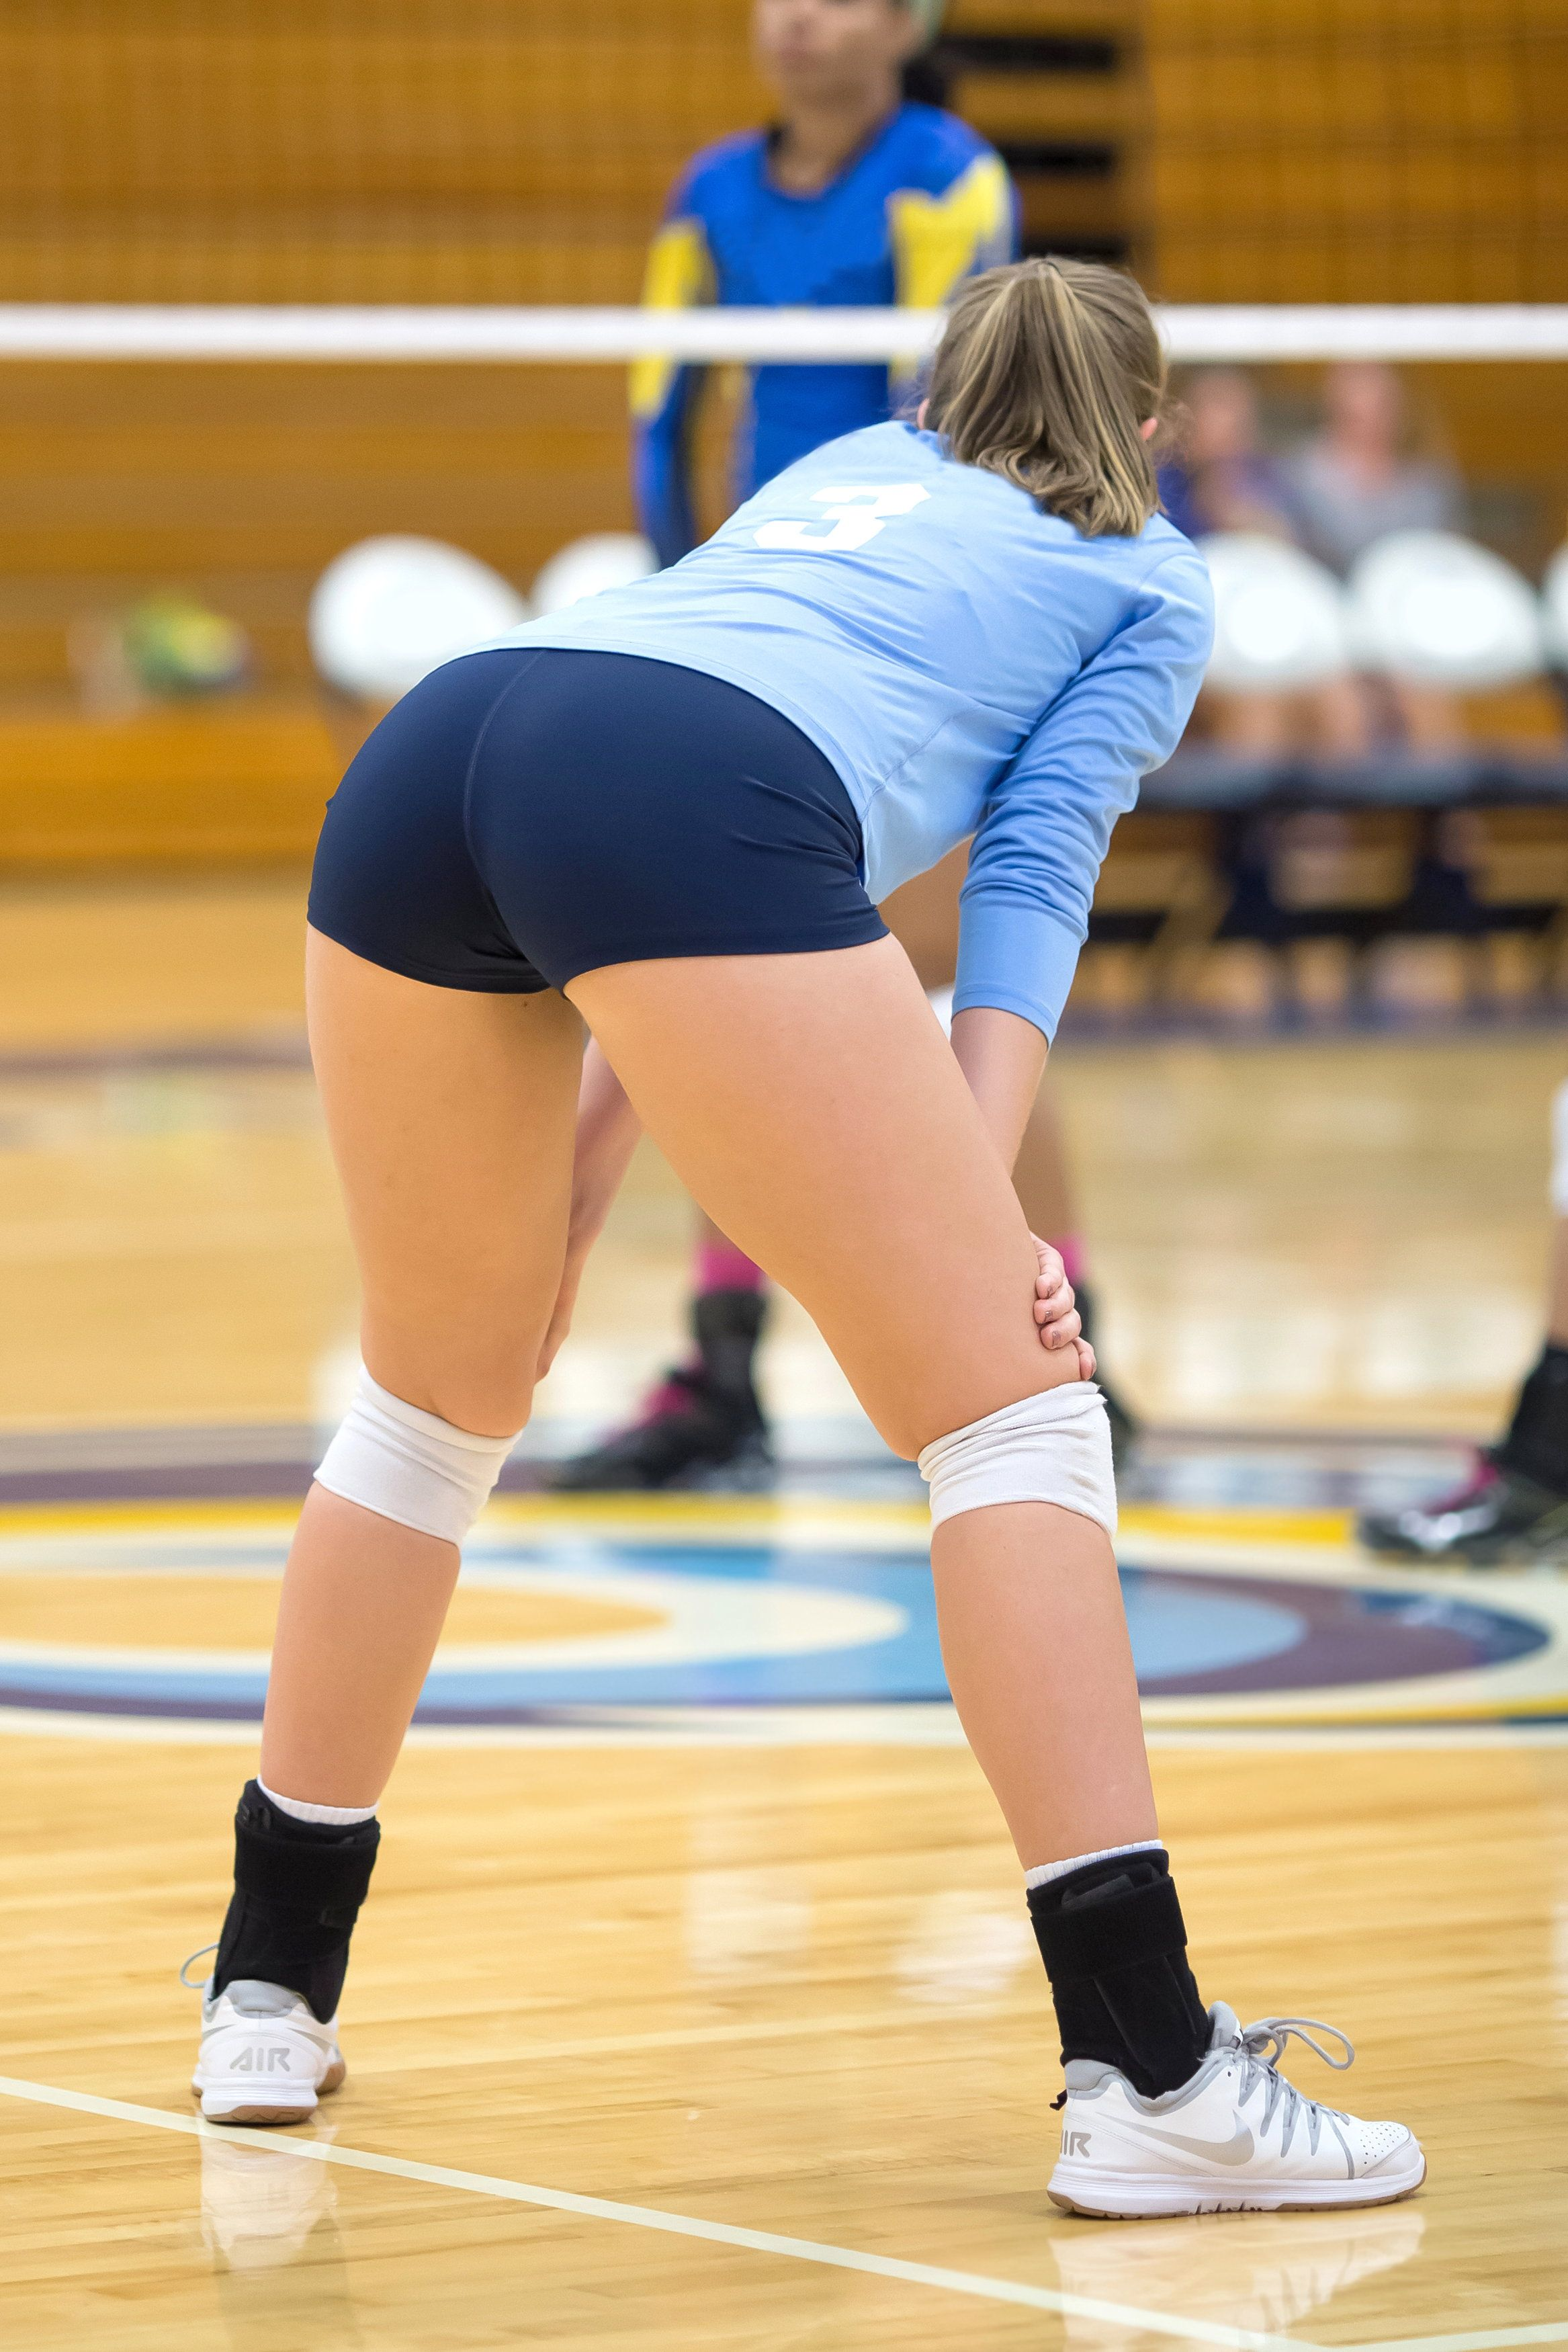 Pin on Women volleyball